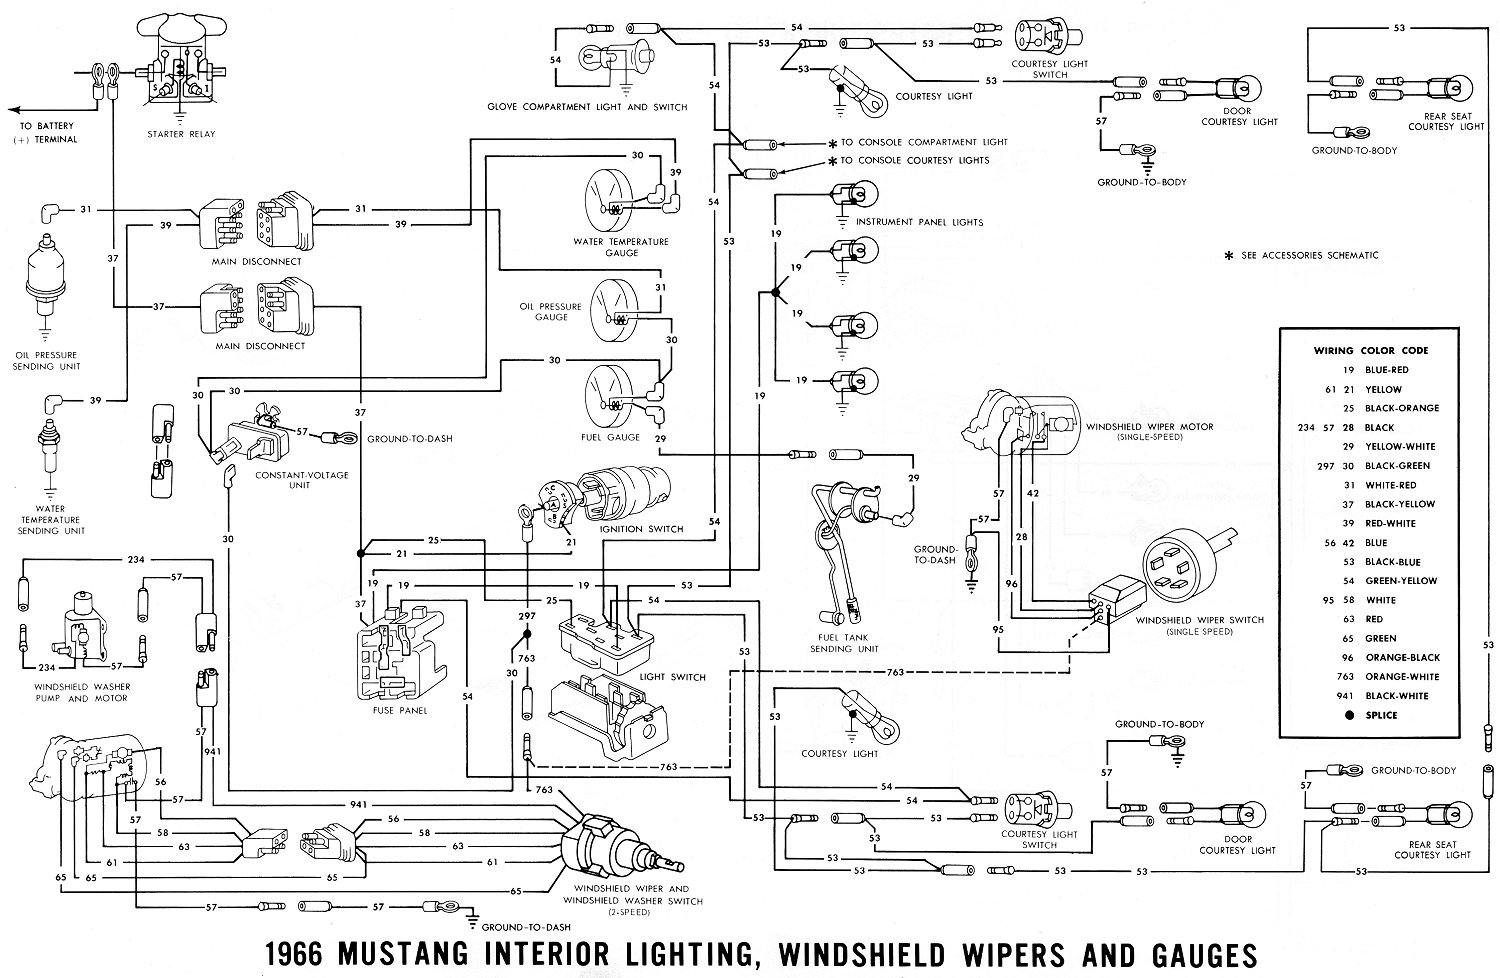 1966 Mustang Wiring Diagrams Average Joe Restoration Engine Schematic